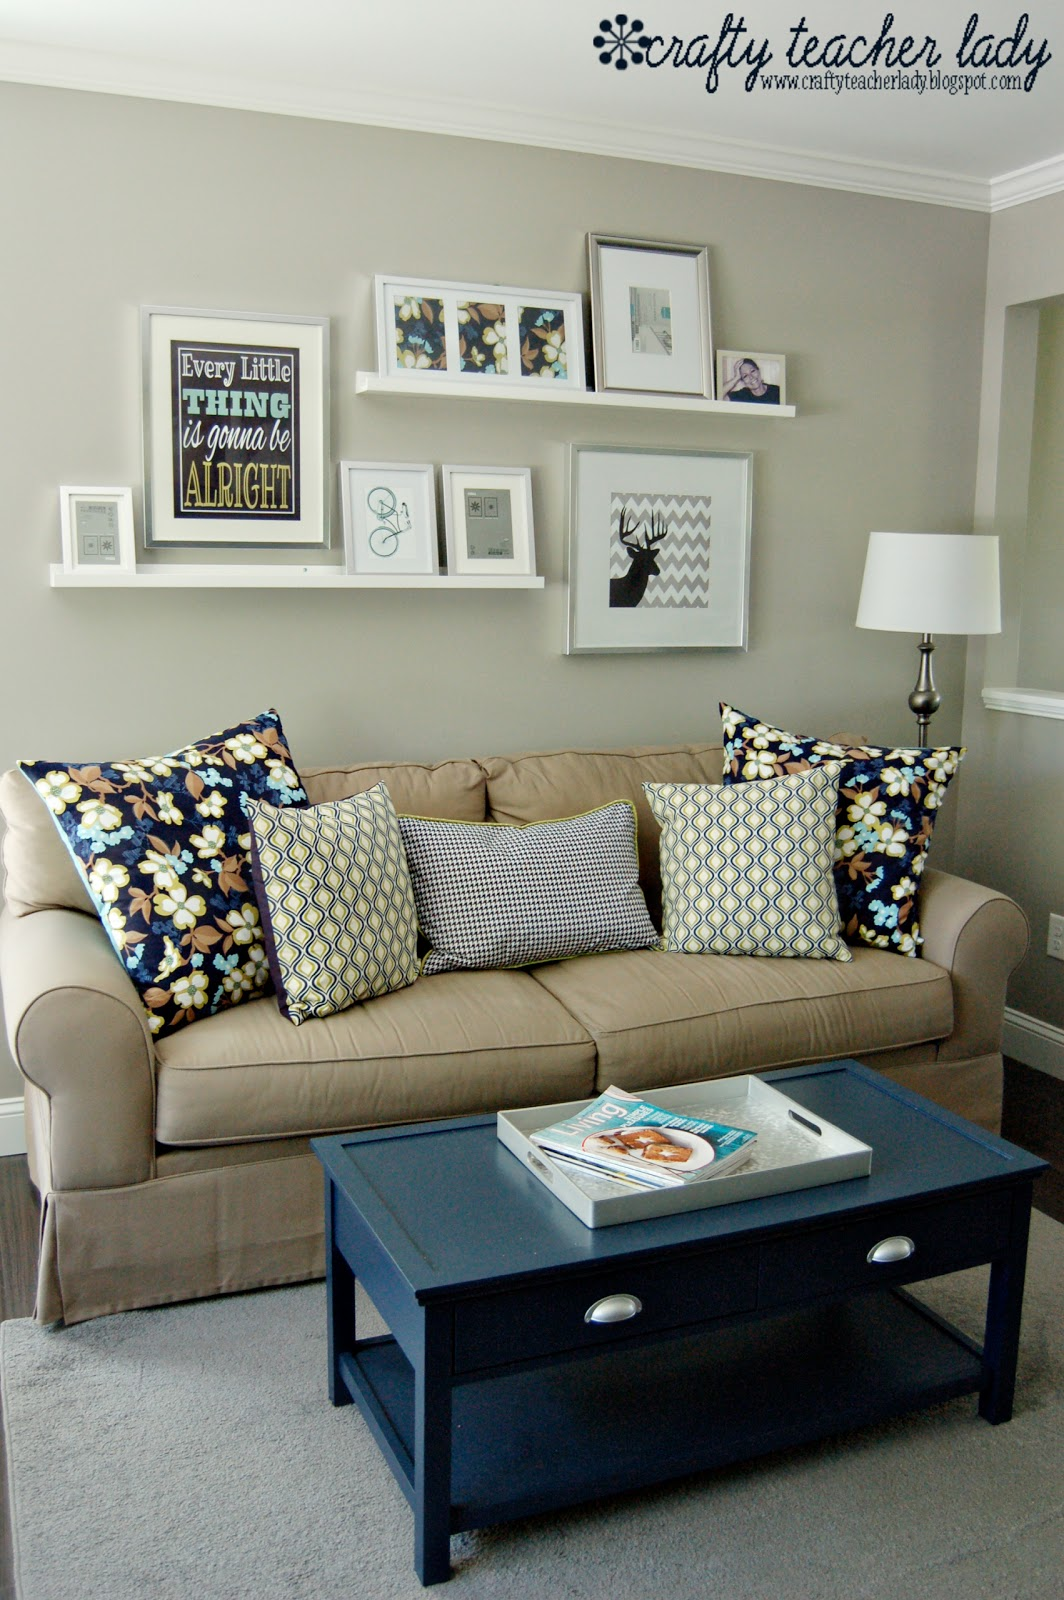 Living Room Wall Rustic Decor: Crafty Teacher Lady: Coffee Table Makeover